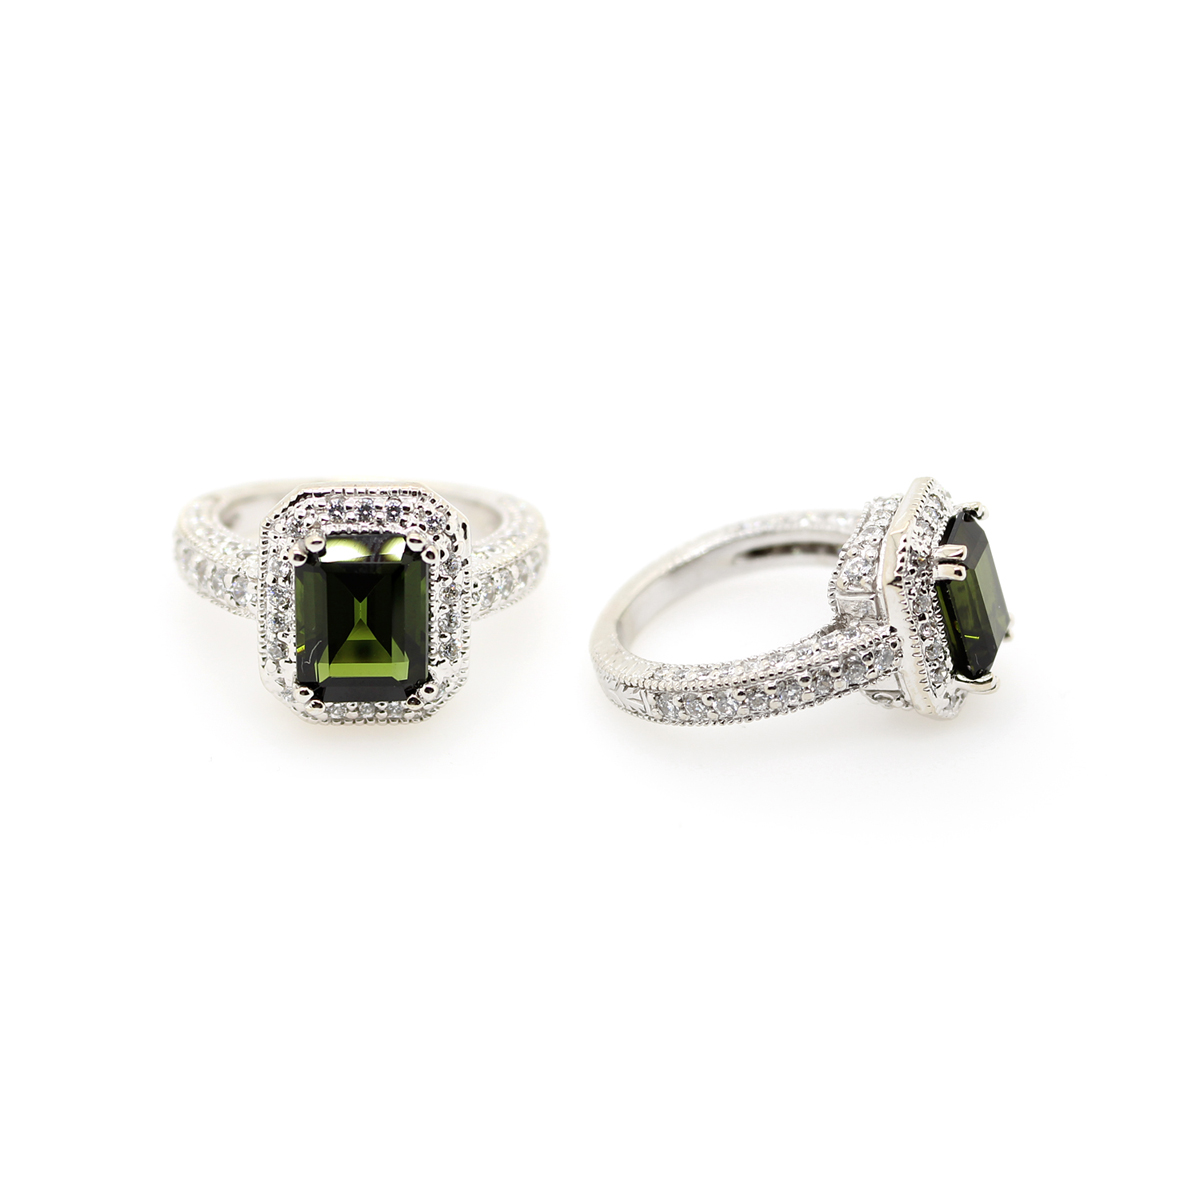 Vintage 14 Karat White Gold Green Tourmaline and Diamond Ring